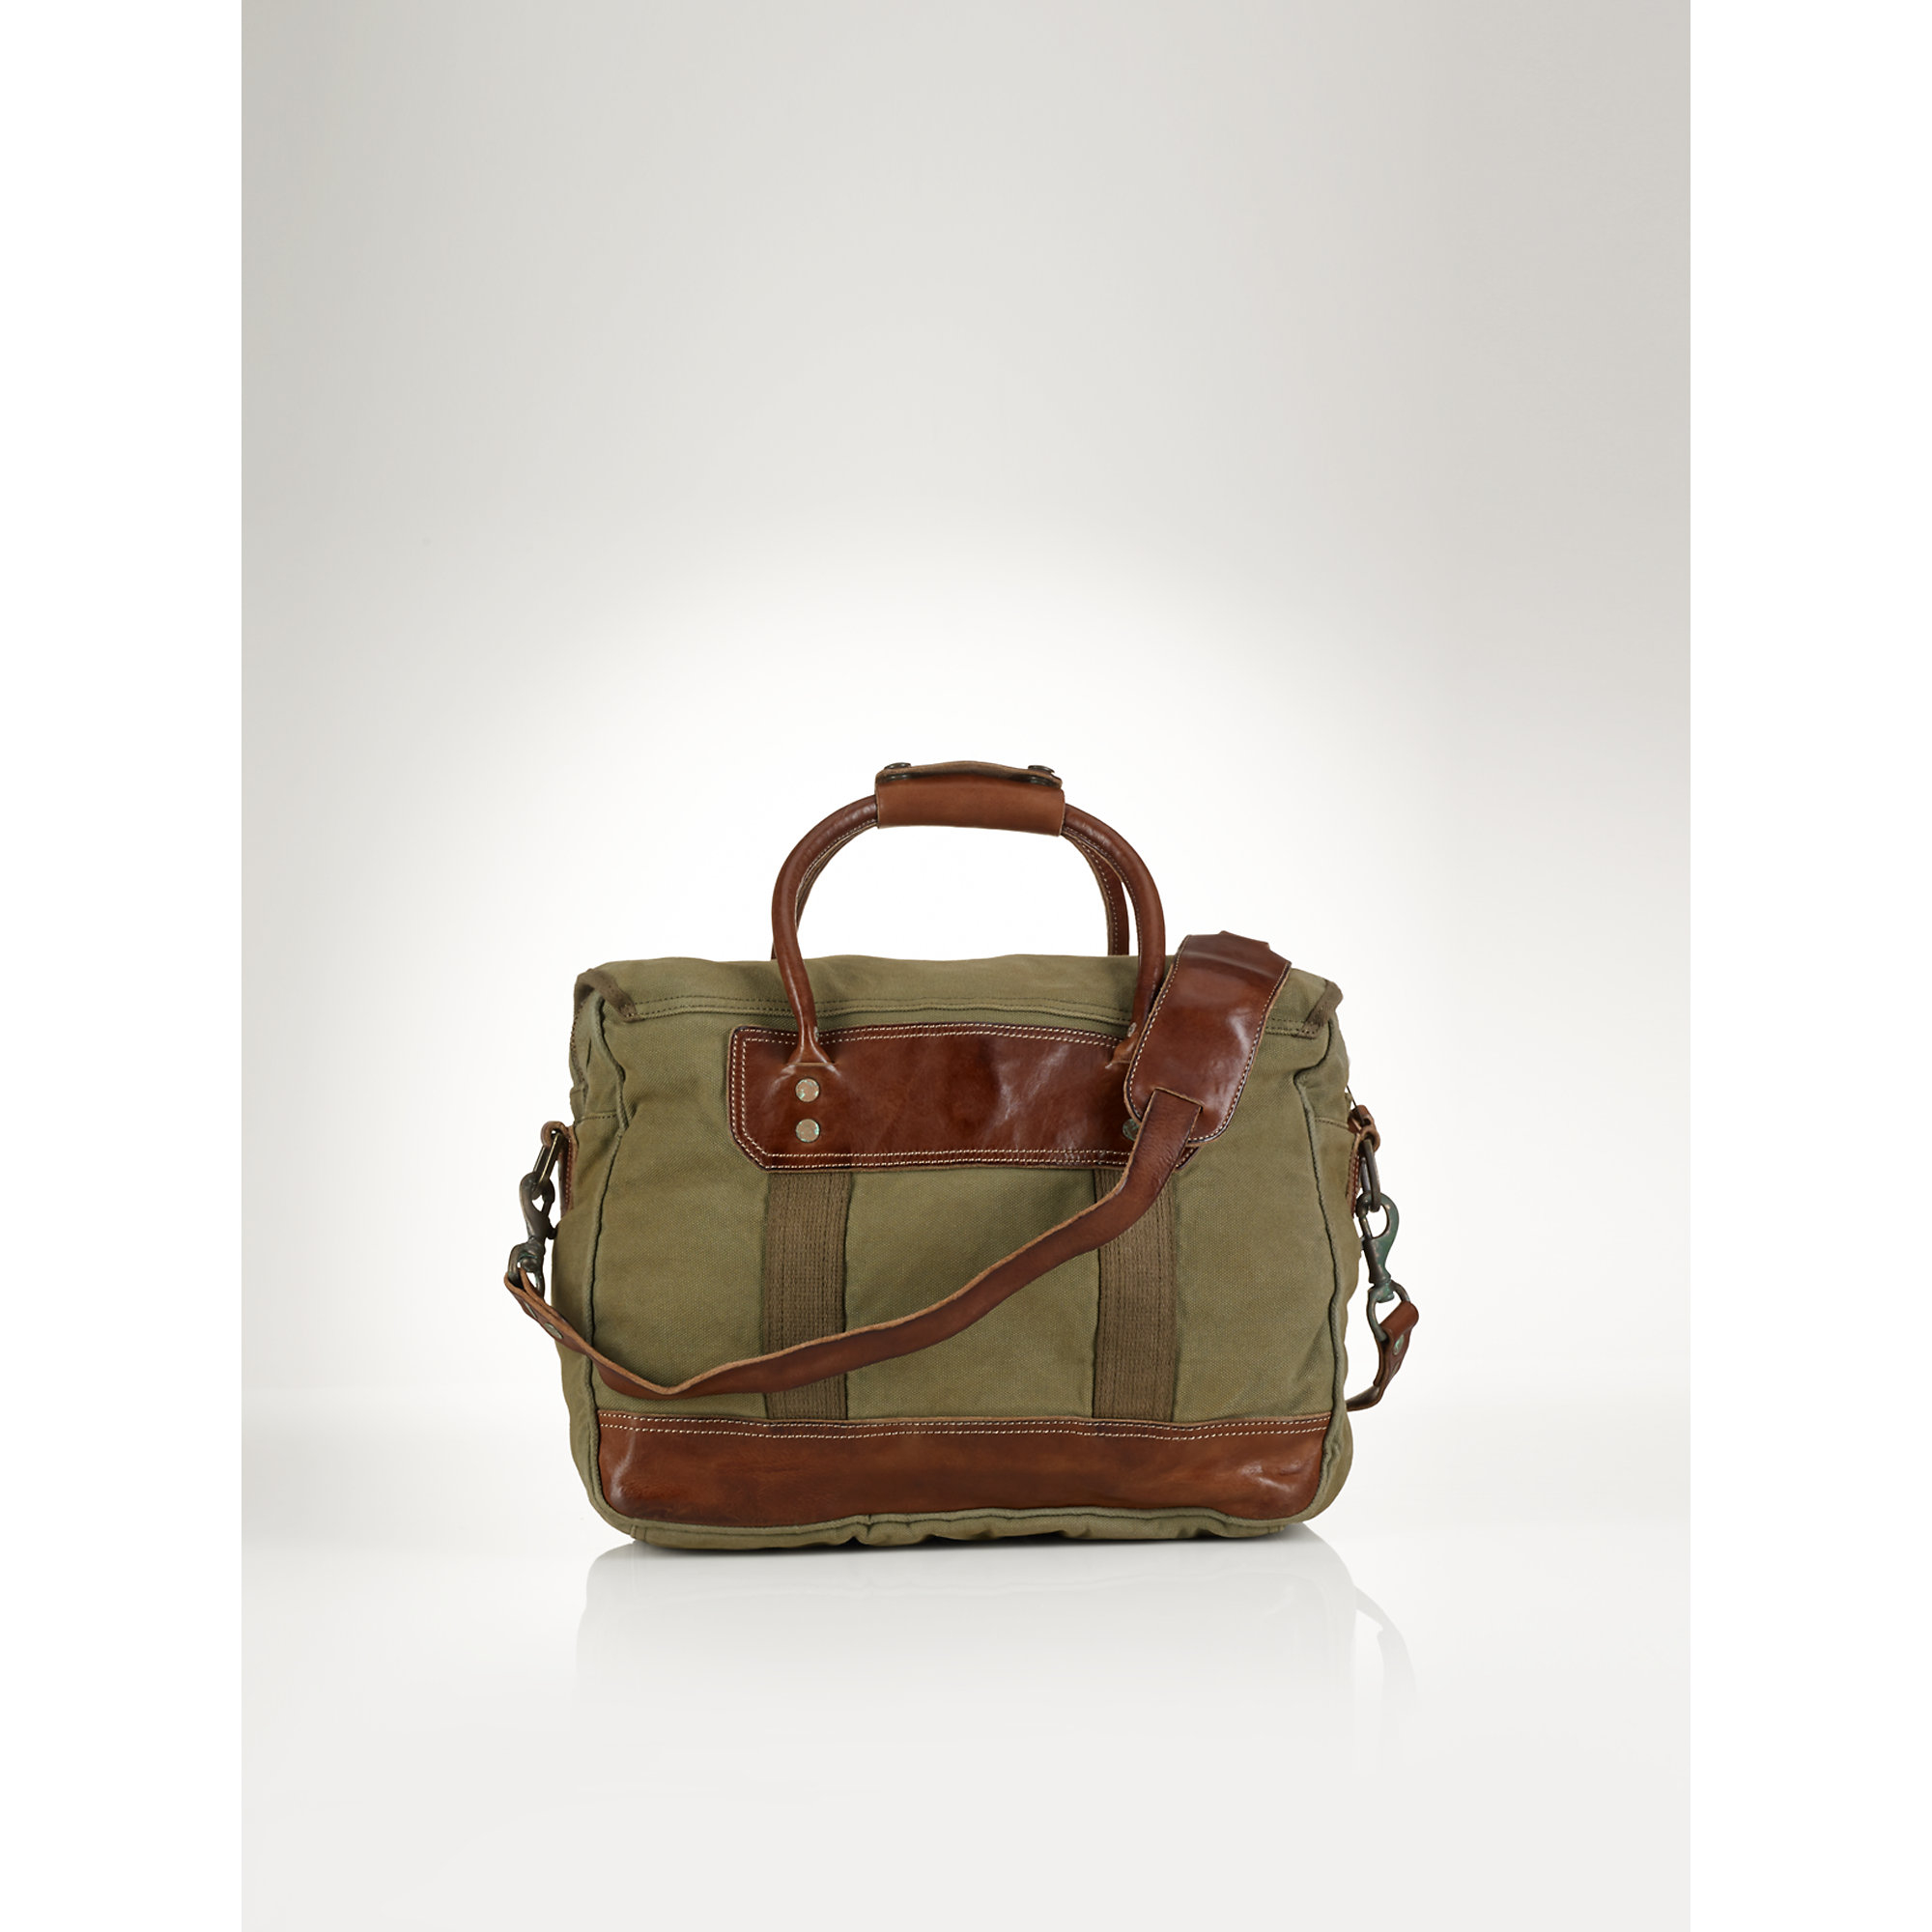 Lyst - Ralph Lauren Canvas Commuter Bag in Green for Men eb6c9b8454